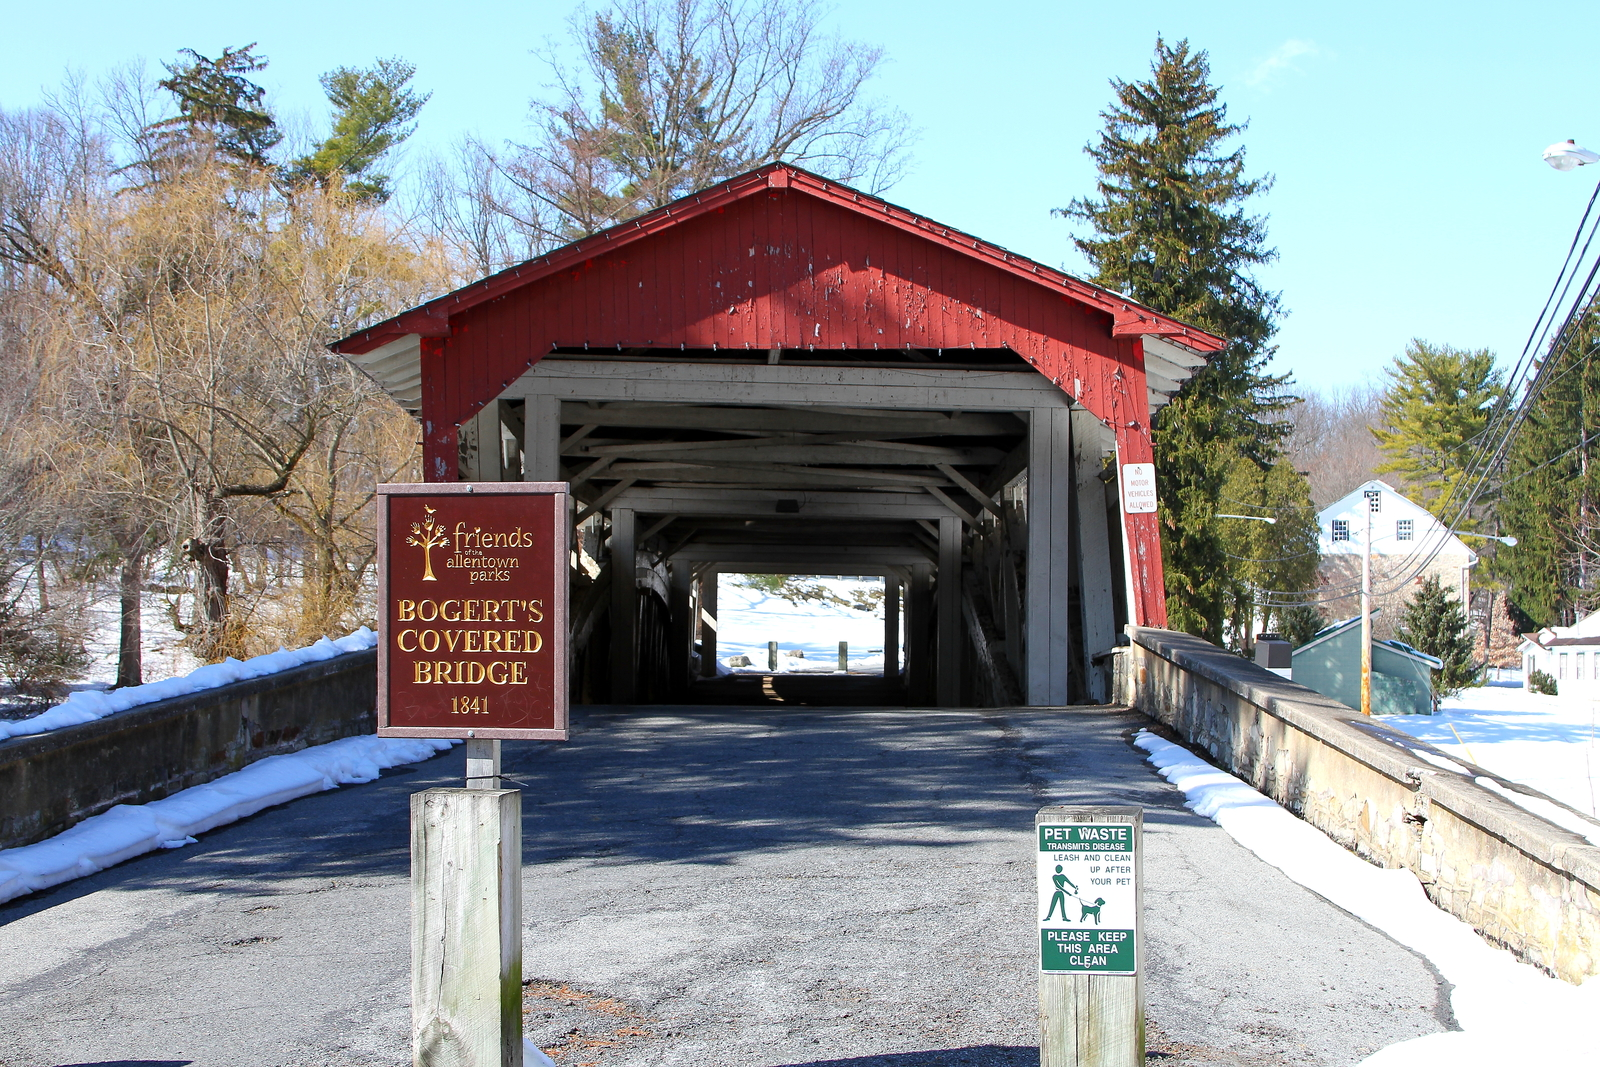 Primary image for Bogert's Covered Bridge Unmatted Photograph